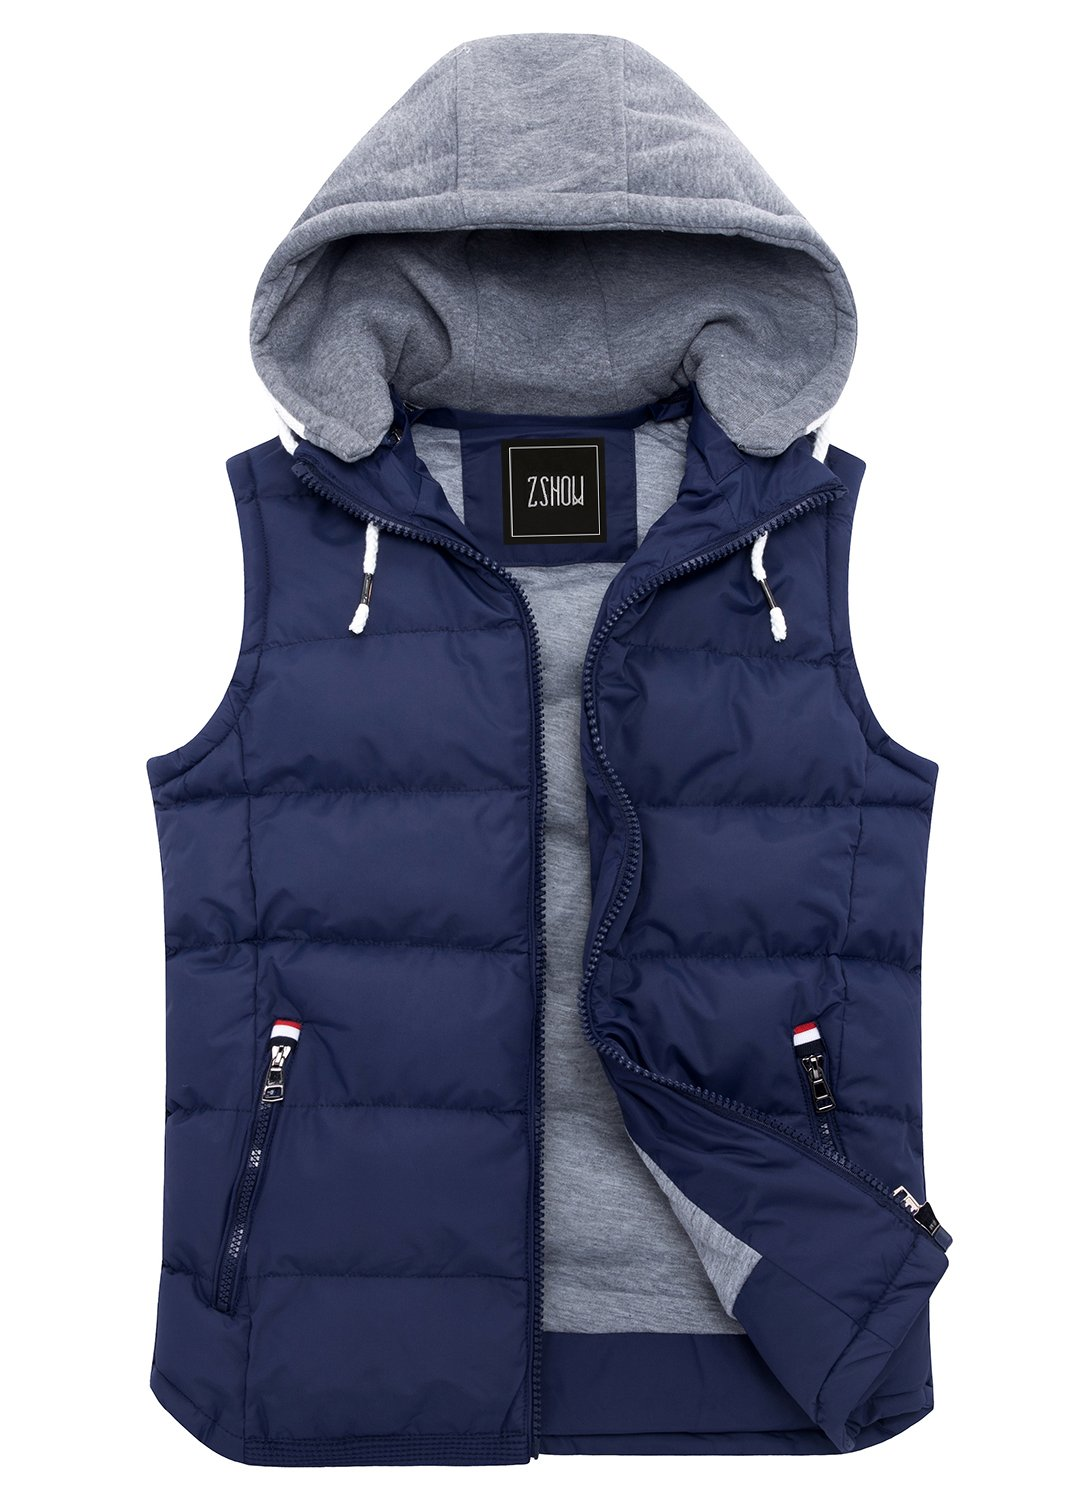 ZSHOW Men's Winter Removable Hooded Cotton-Padded Vest Outerwear Jackets(Dark Blue,X-Large)